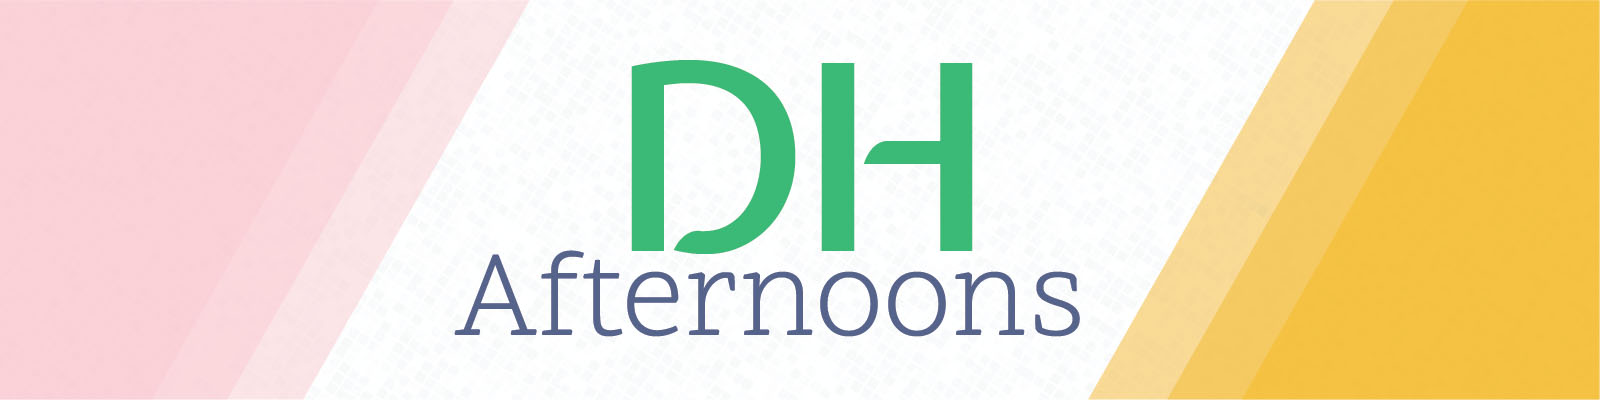 DH Afternoons Banner Image